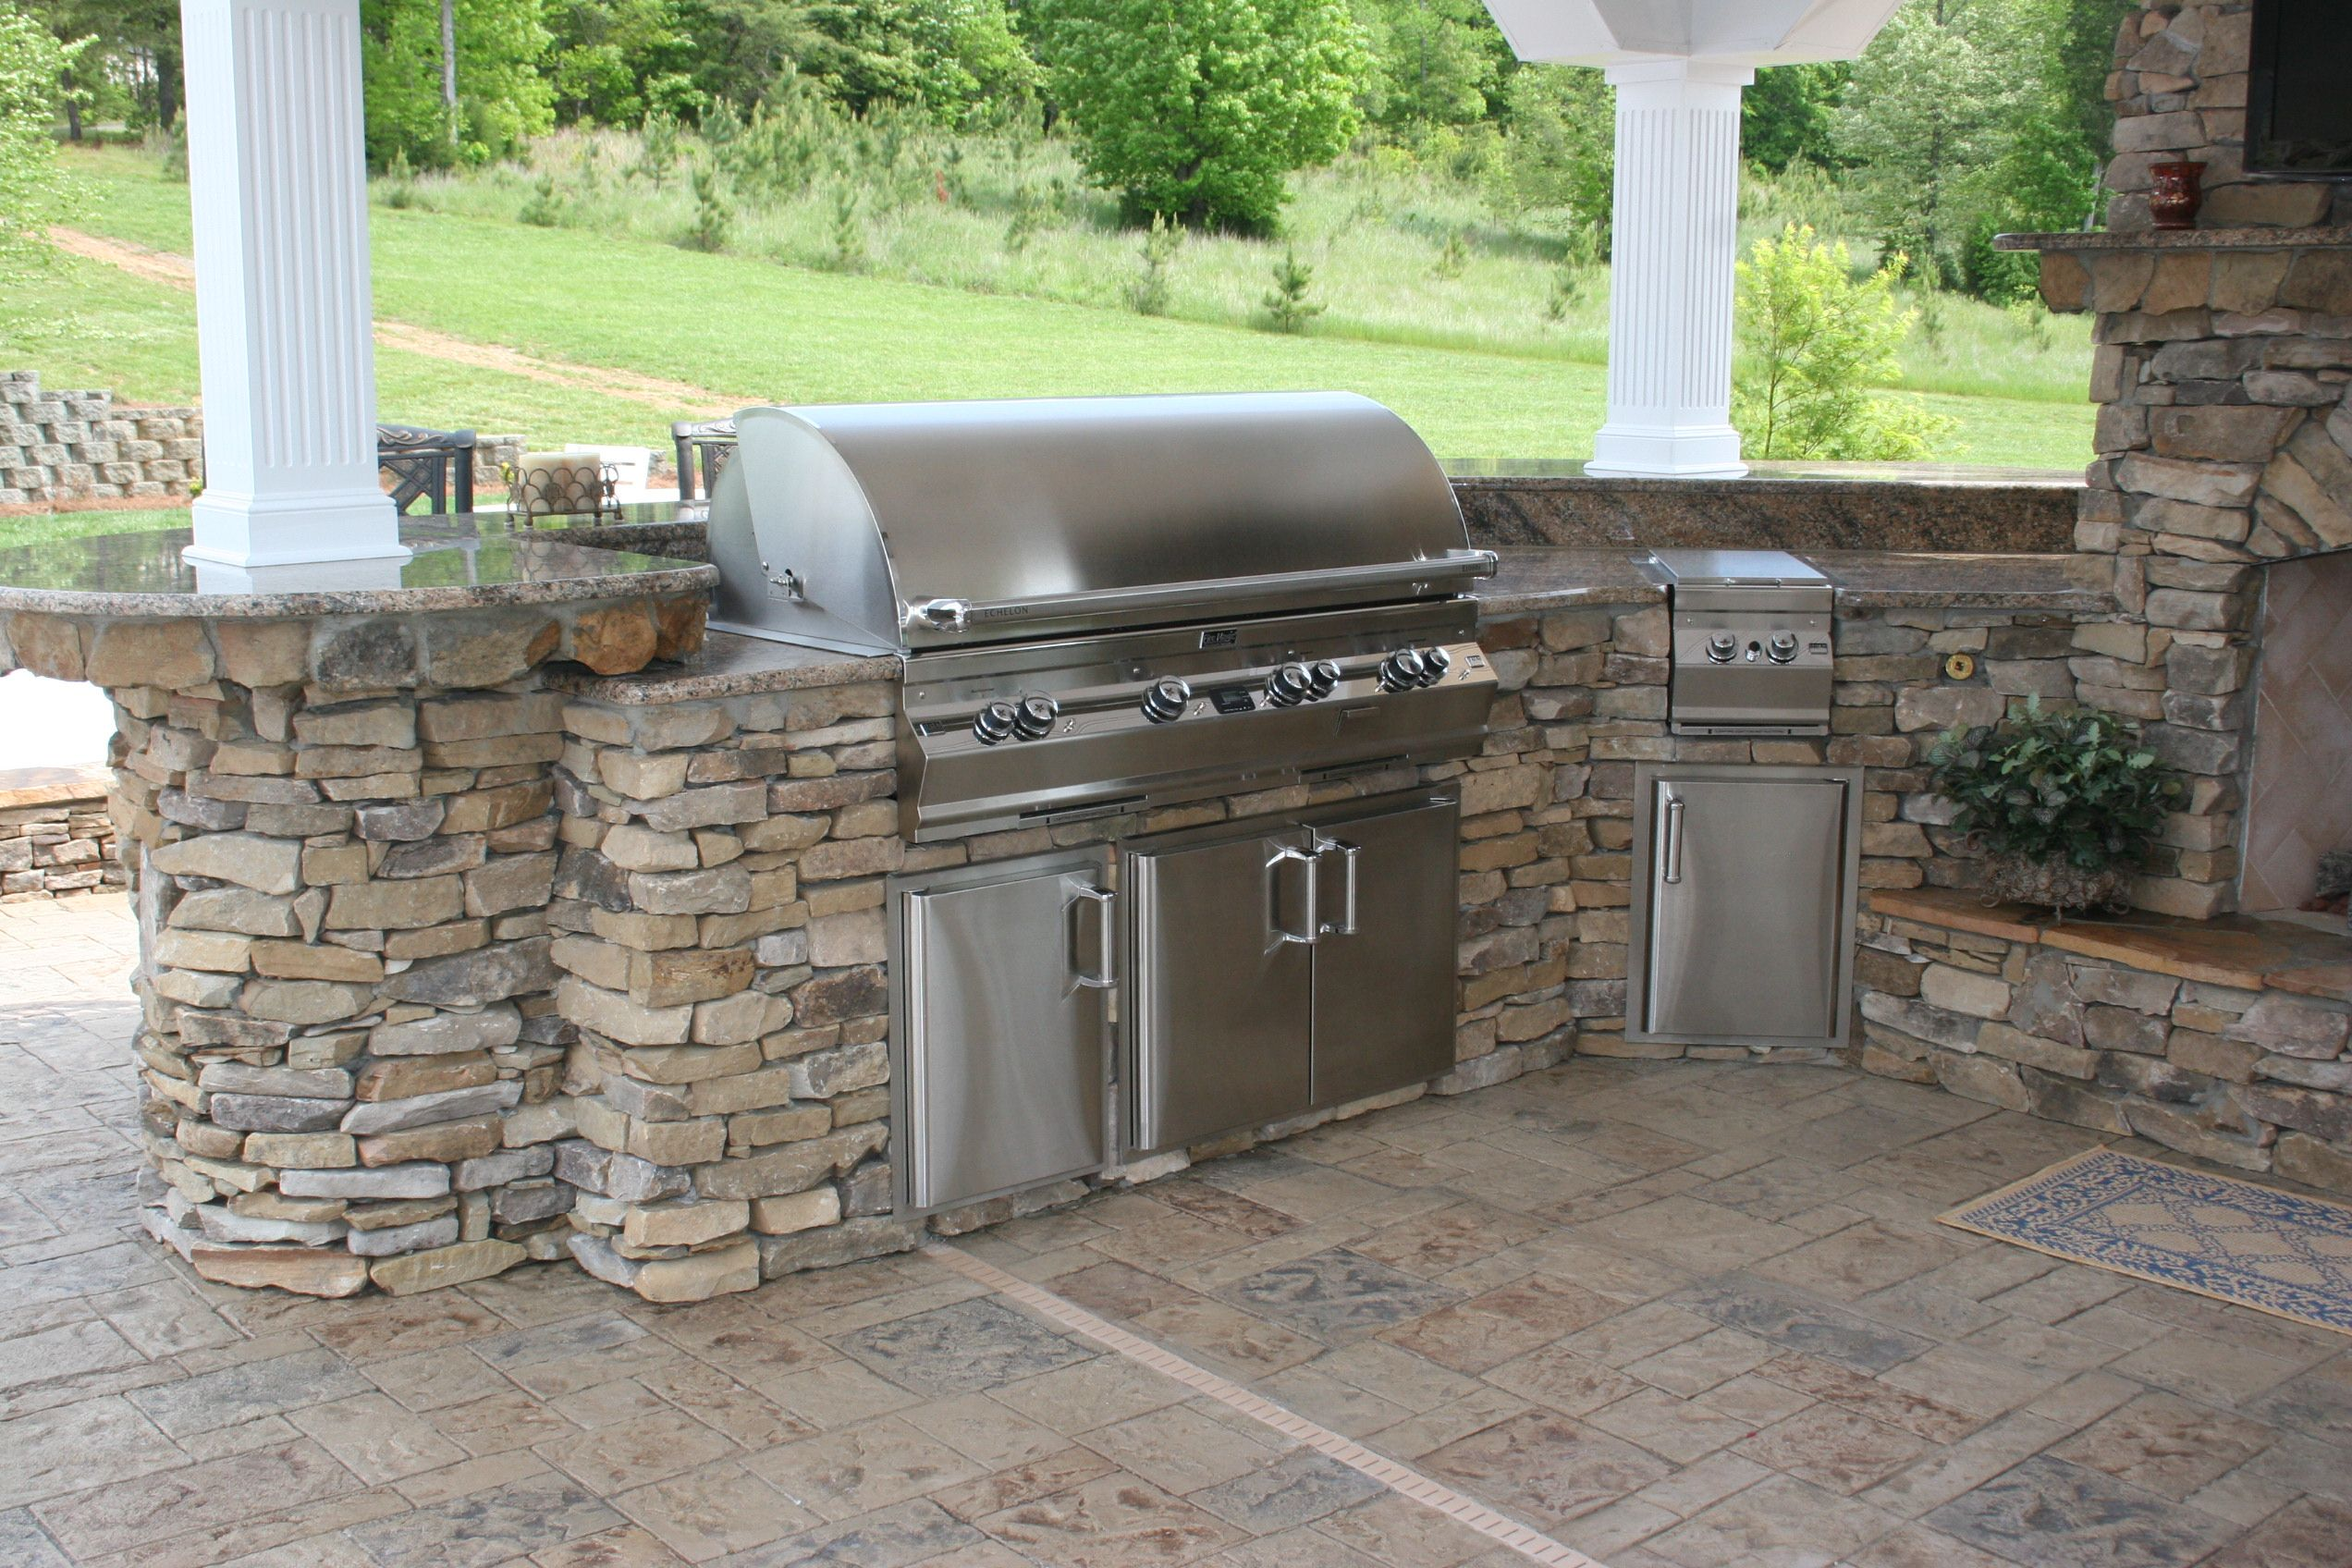 Outdoor Kitchen Grill Gas Stove Top Ice Chest Patio Gas Stove Top Outdoor Kitchen